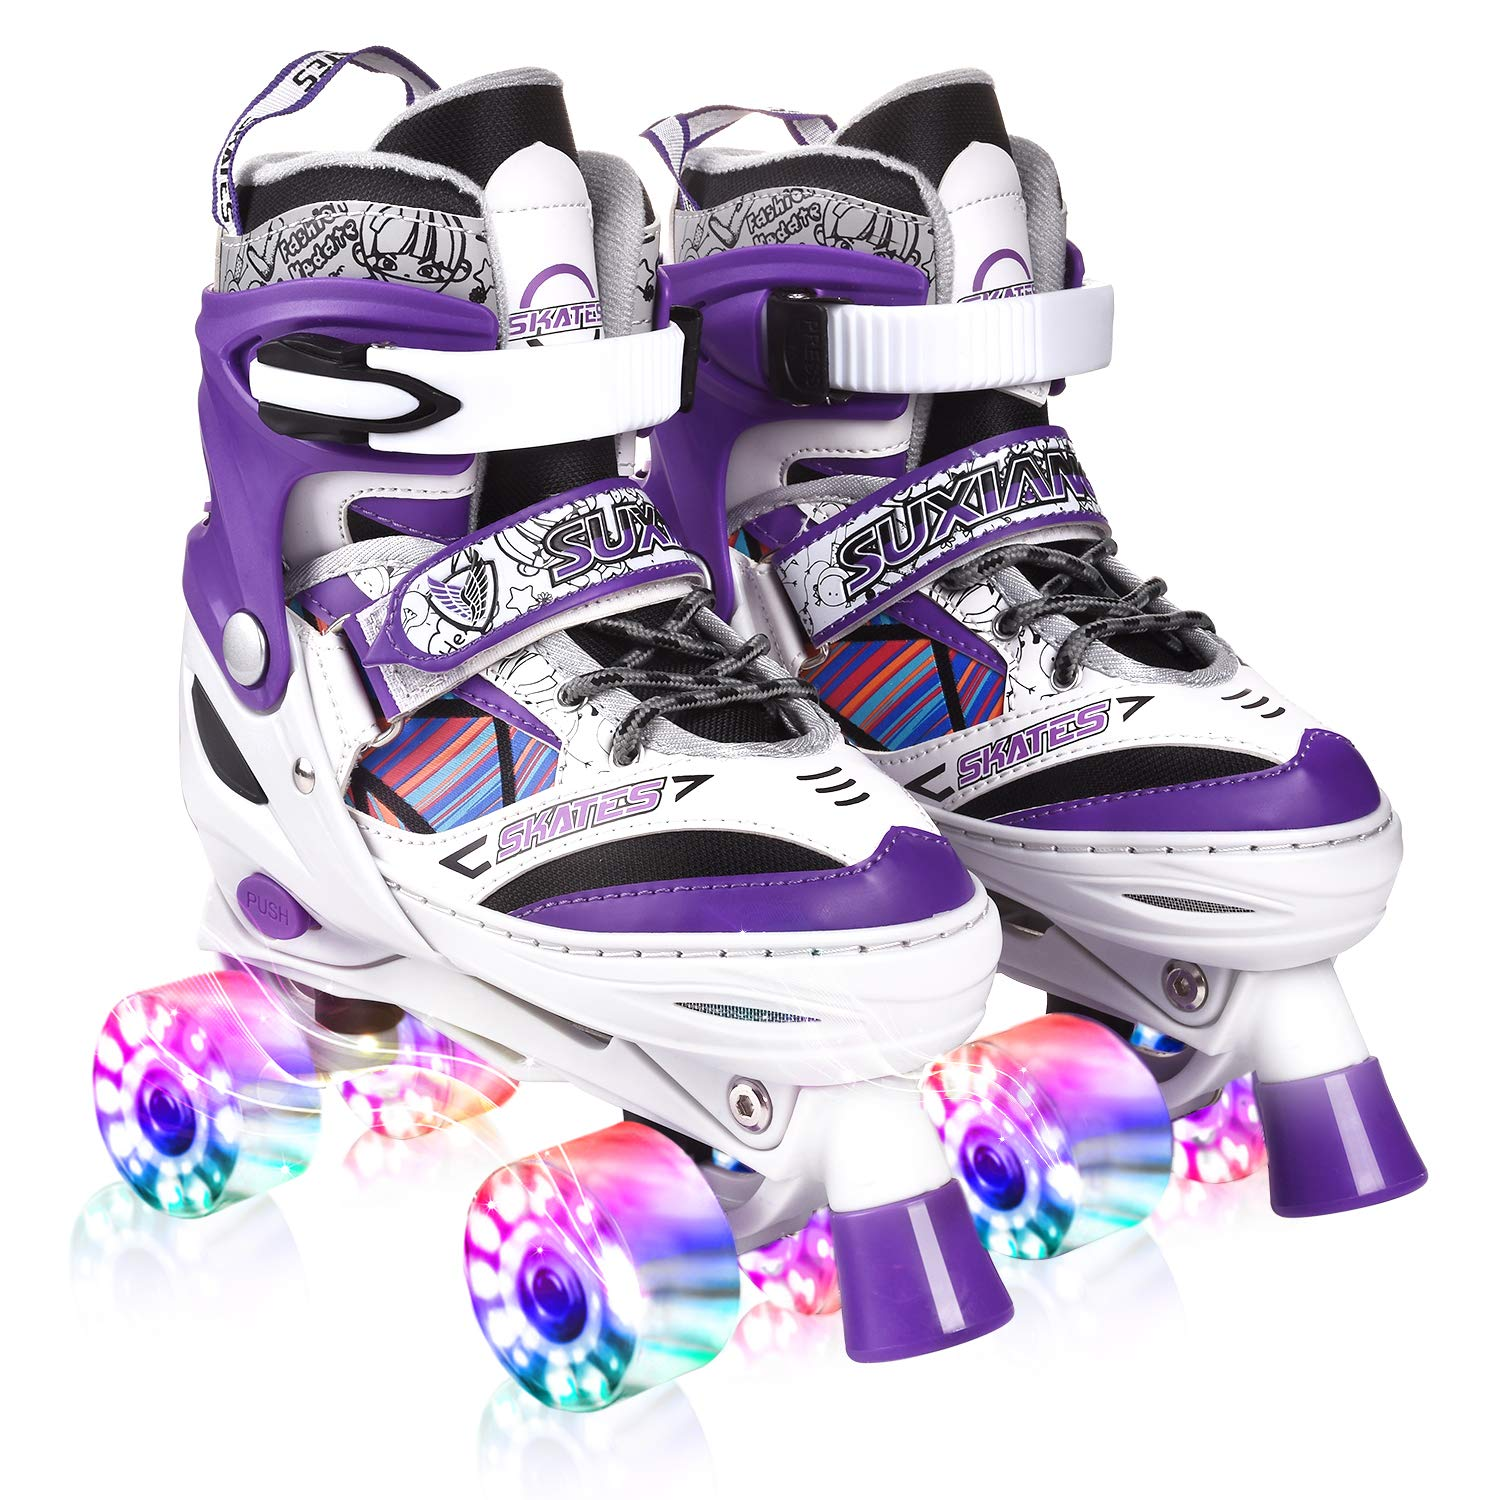 Kuxuan Saya Roller Skates Adjustable for Kids,with All Wheels Light up,Fun Illuminating for Girls and Ladies (Purple, Medium(1-4US)) by Kuxuan